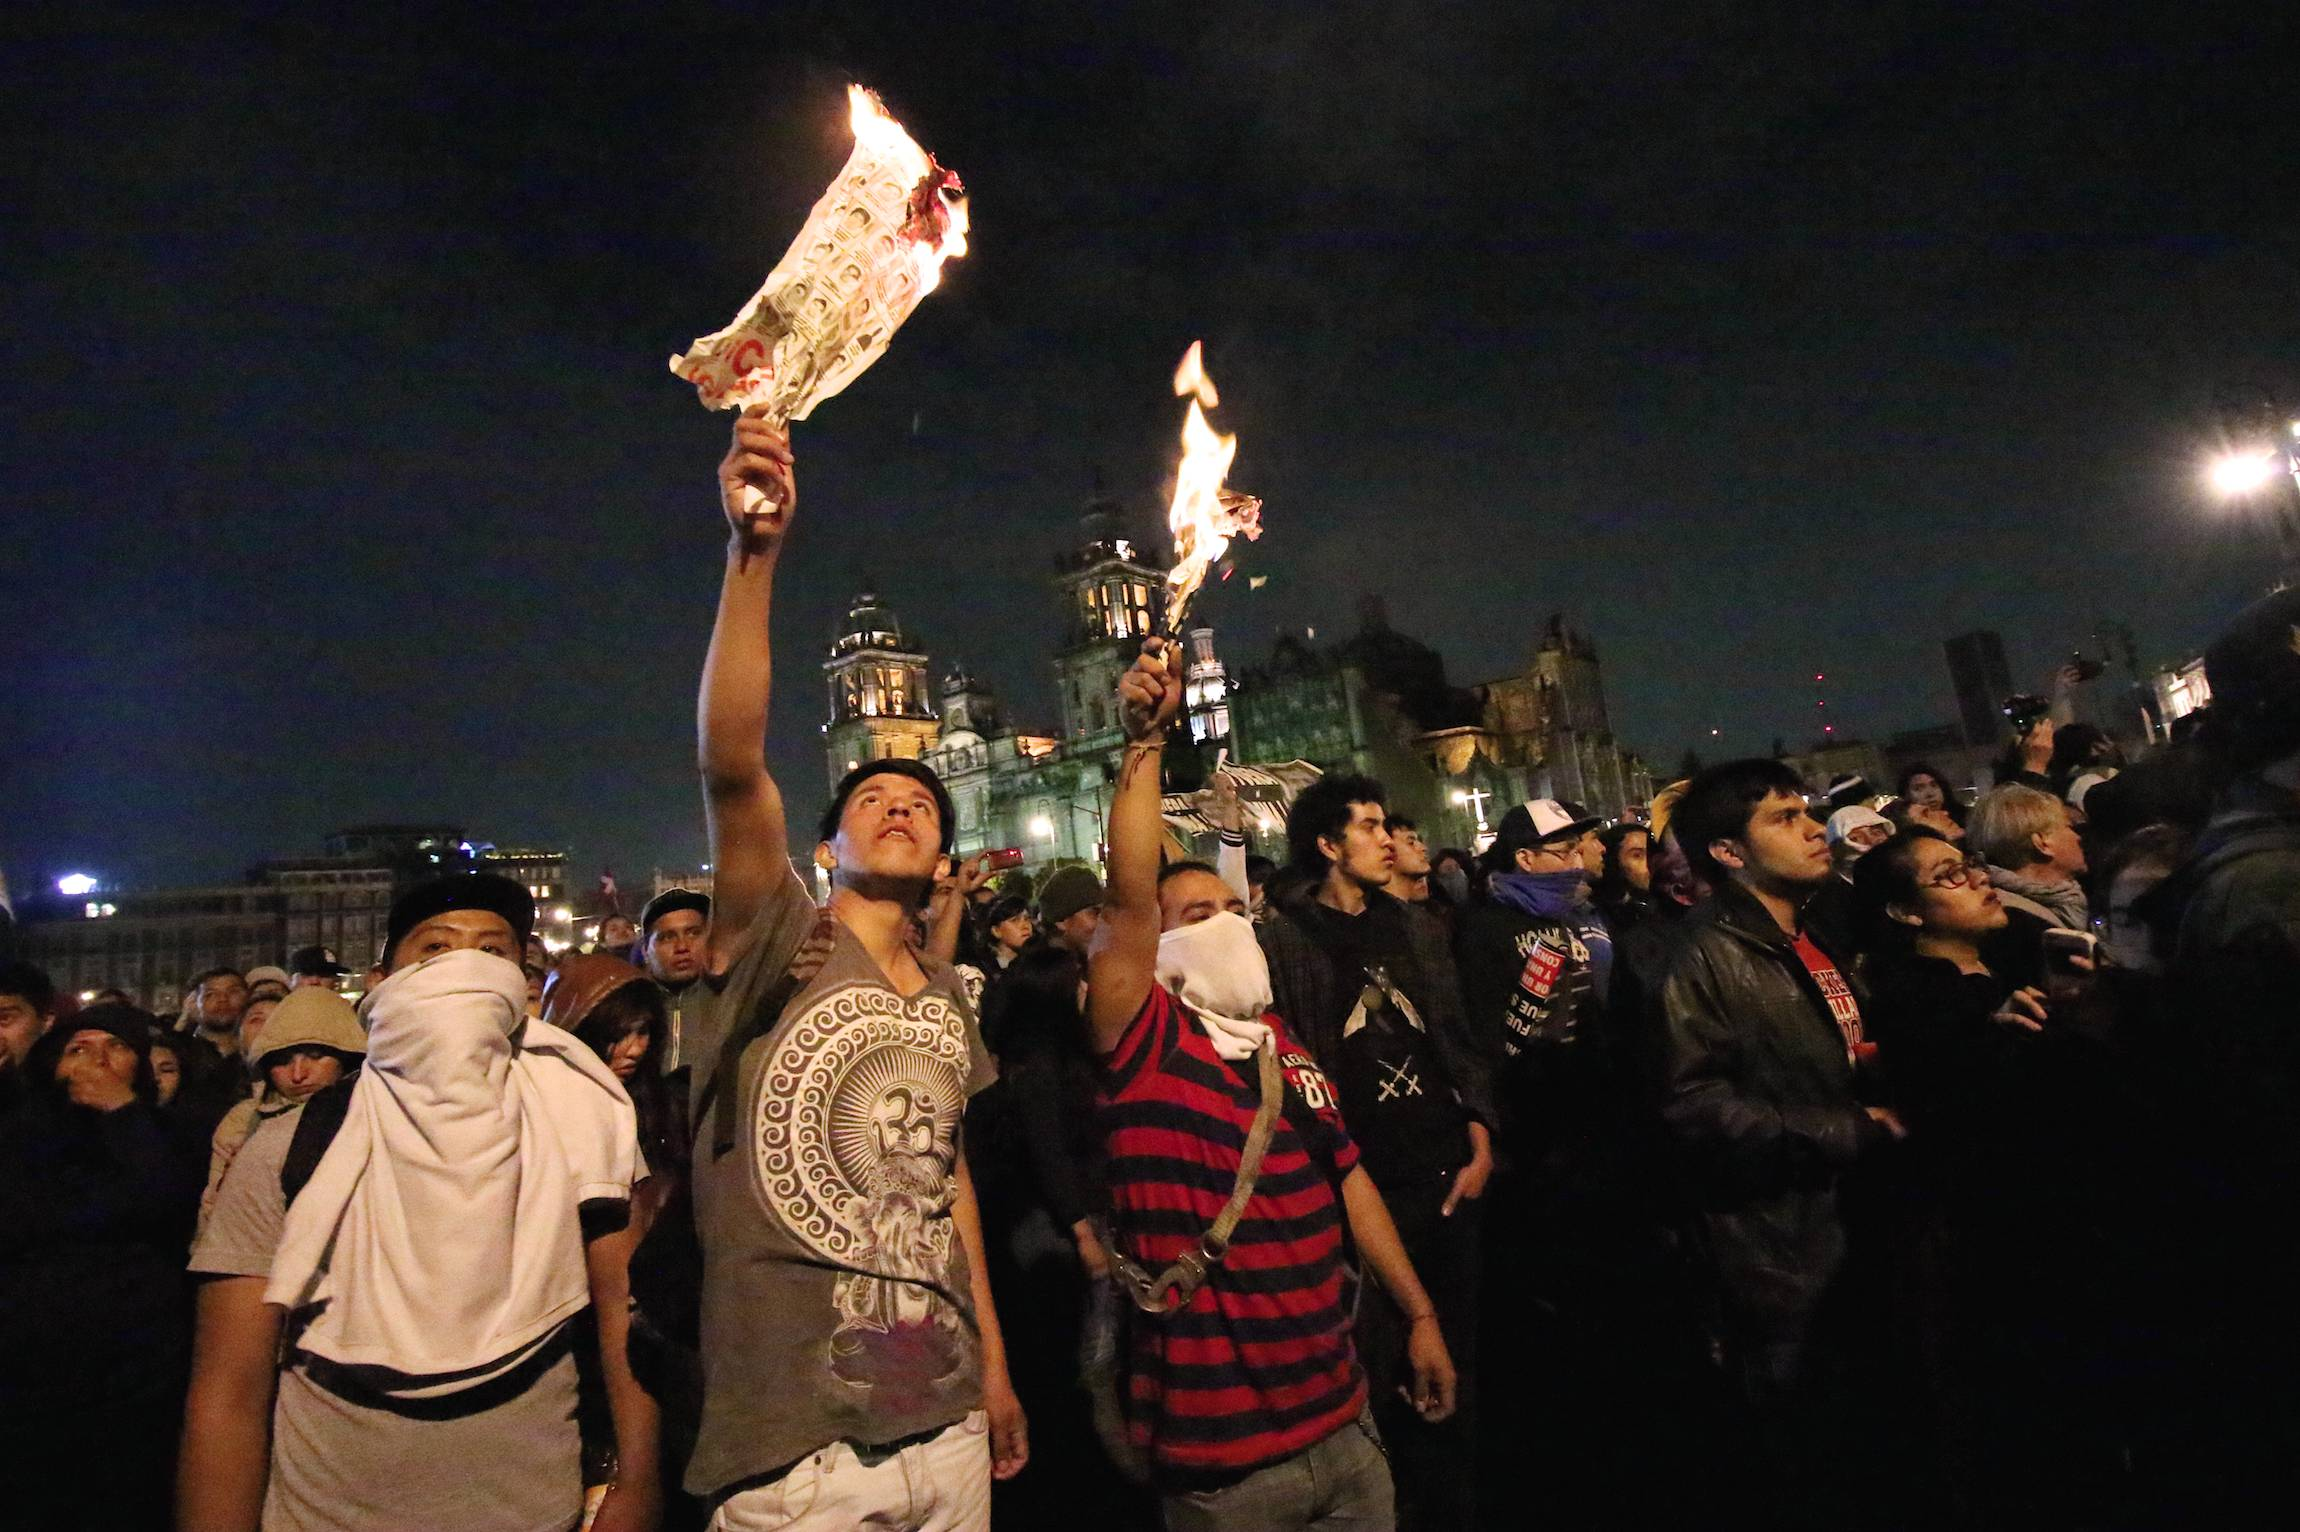 Protestors waive burning paper at a rally in Mexico City, D.F, Mexico, Thursday, Nov. 20, 2014. The rally followed similar, partly violent demonstrations in the country since the disappearance of 43 students in Guerrero State and was primarily against president Enrique Peña Nieto, asking him to step down.